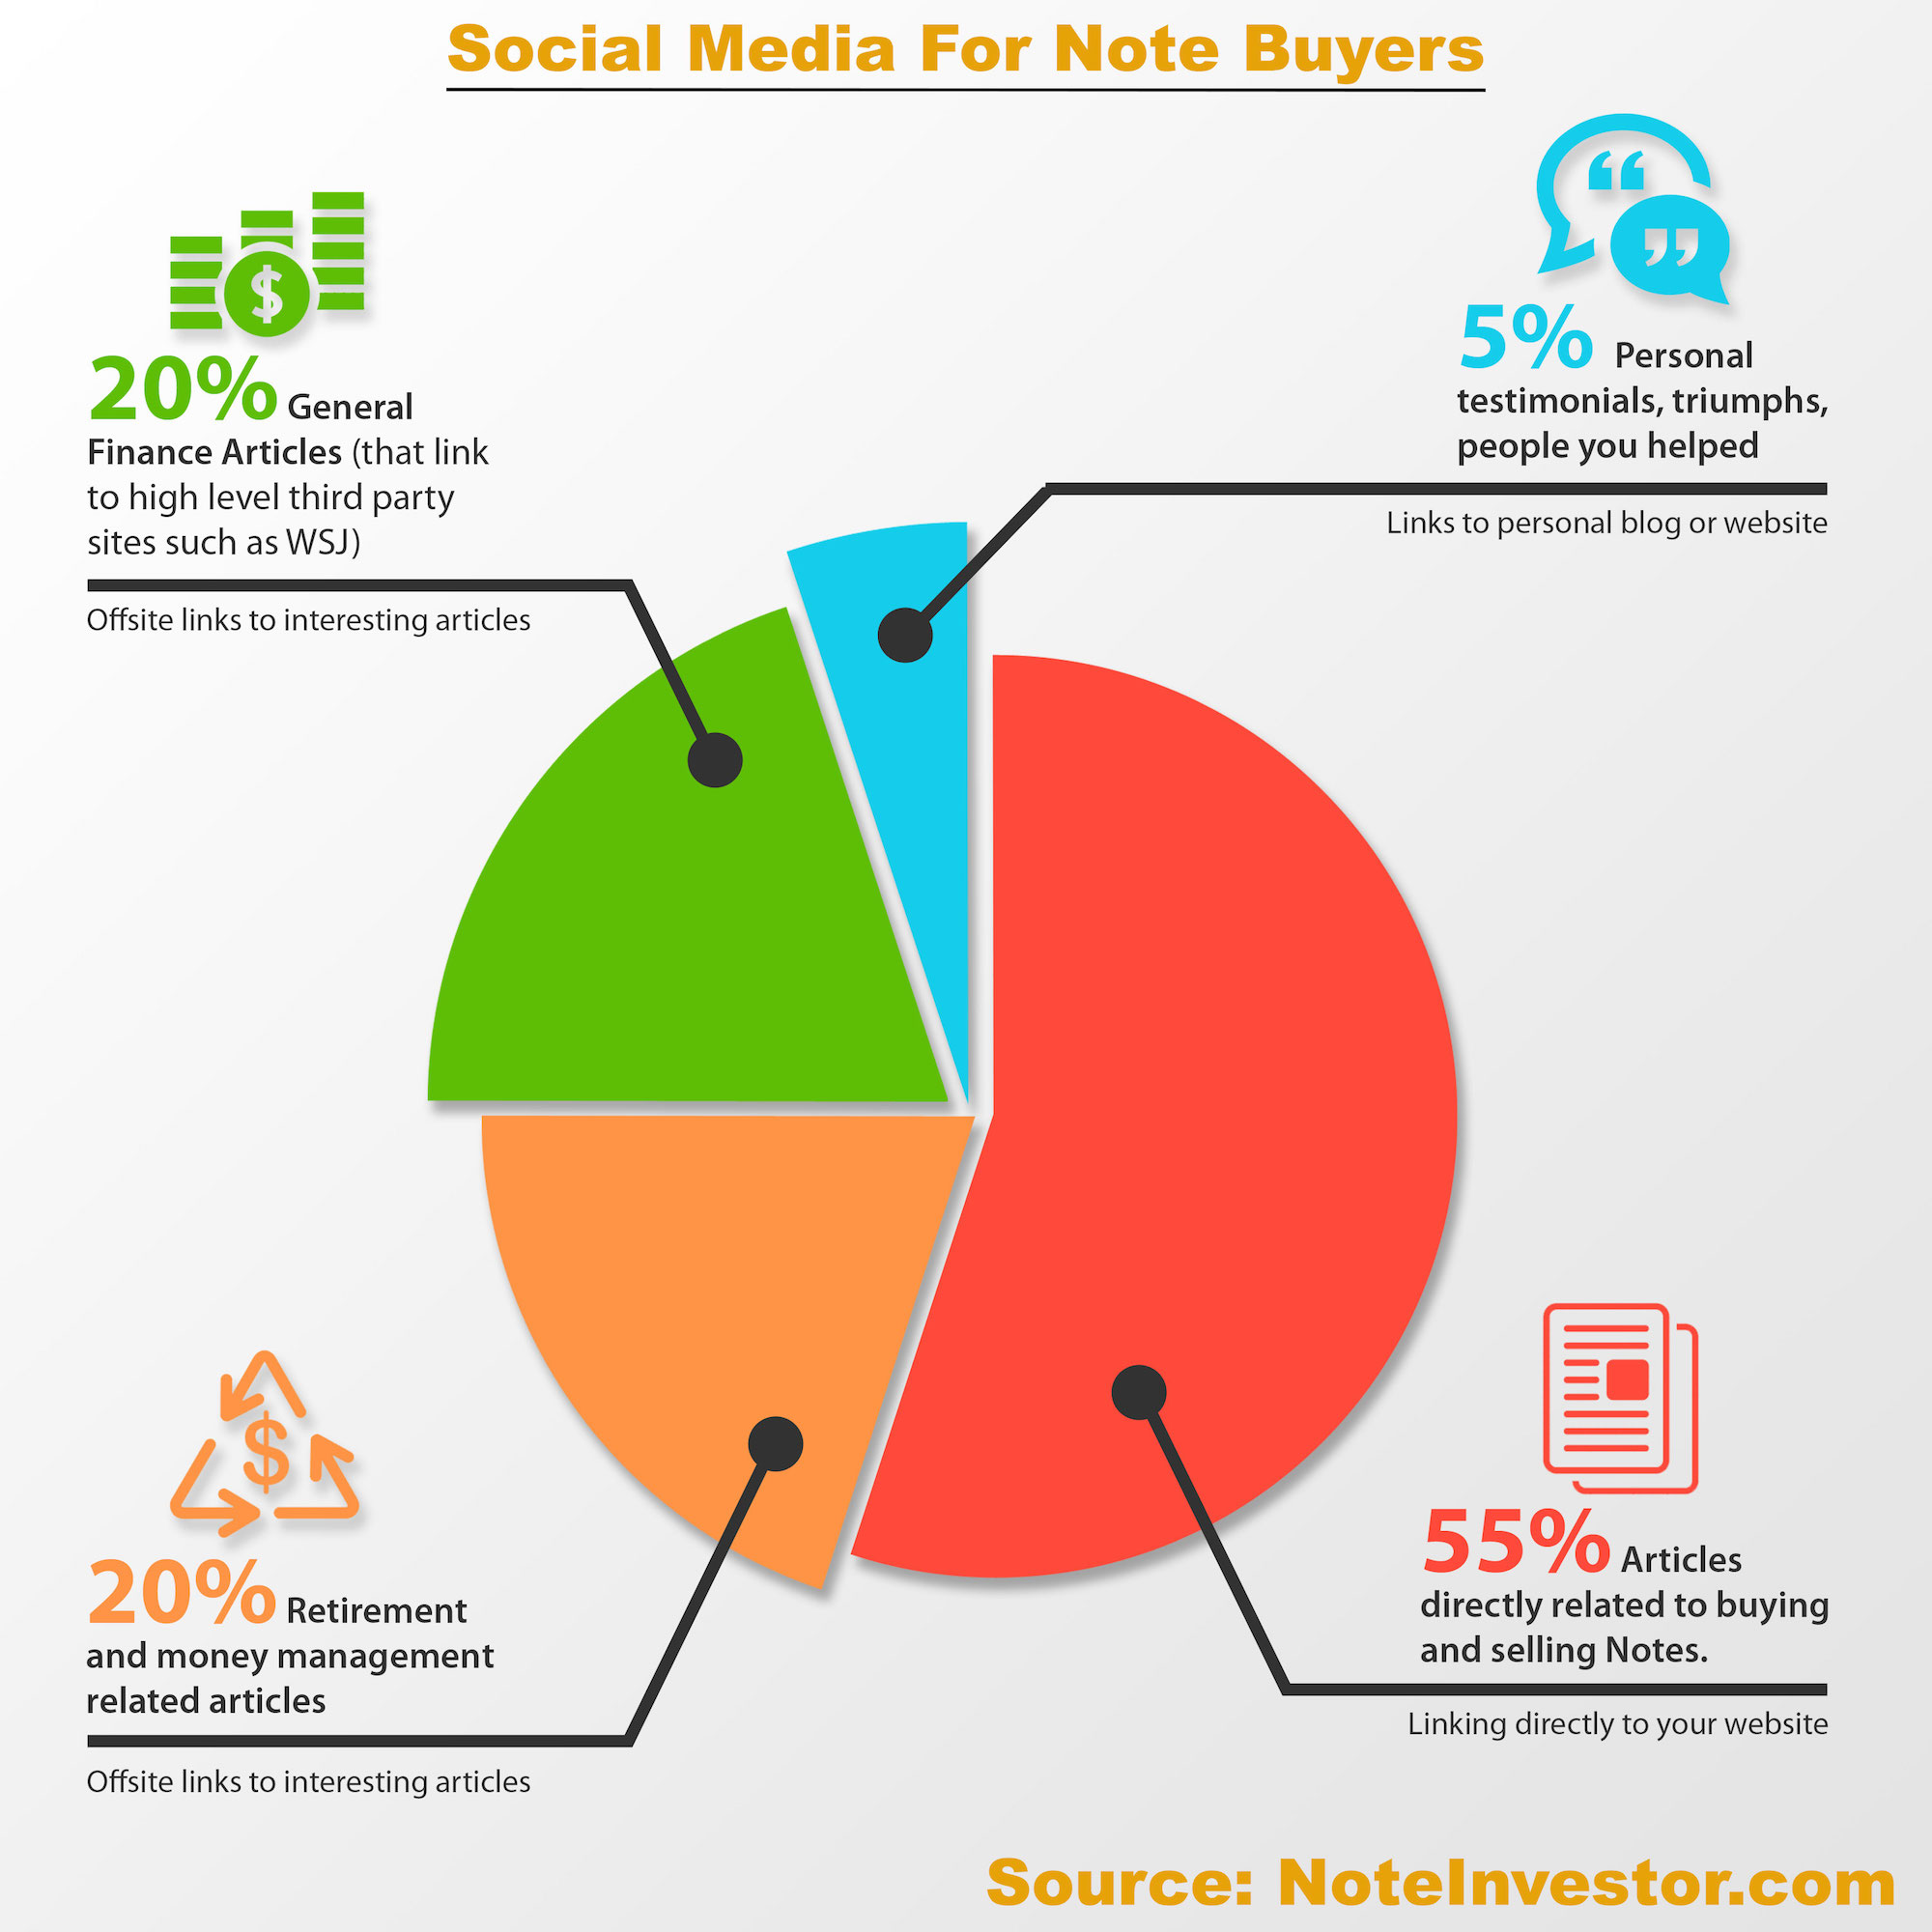 Social Media Marketing For Note Buyers